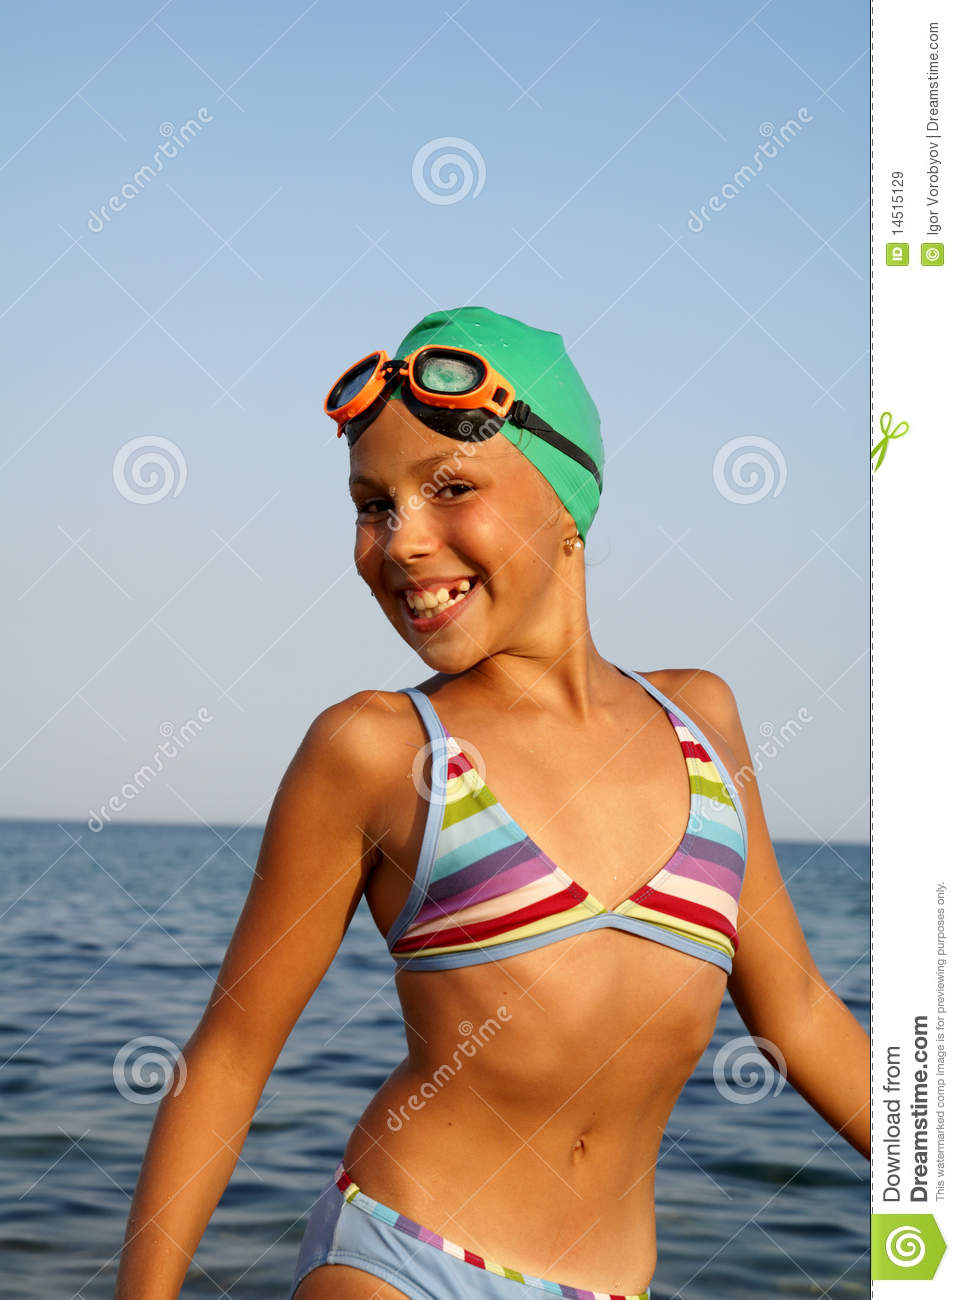 preteen naked girl Preteen girl swimsuit rear view Stock Photos - Page 1 ...